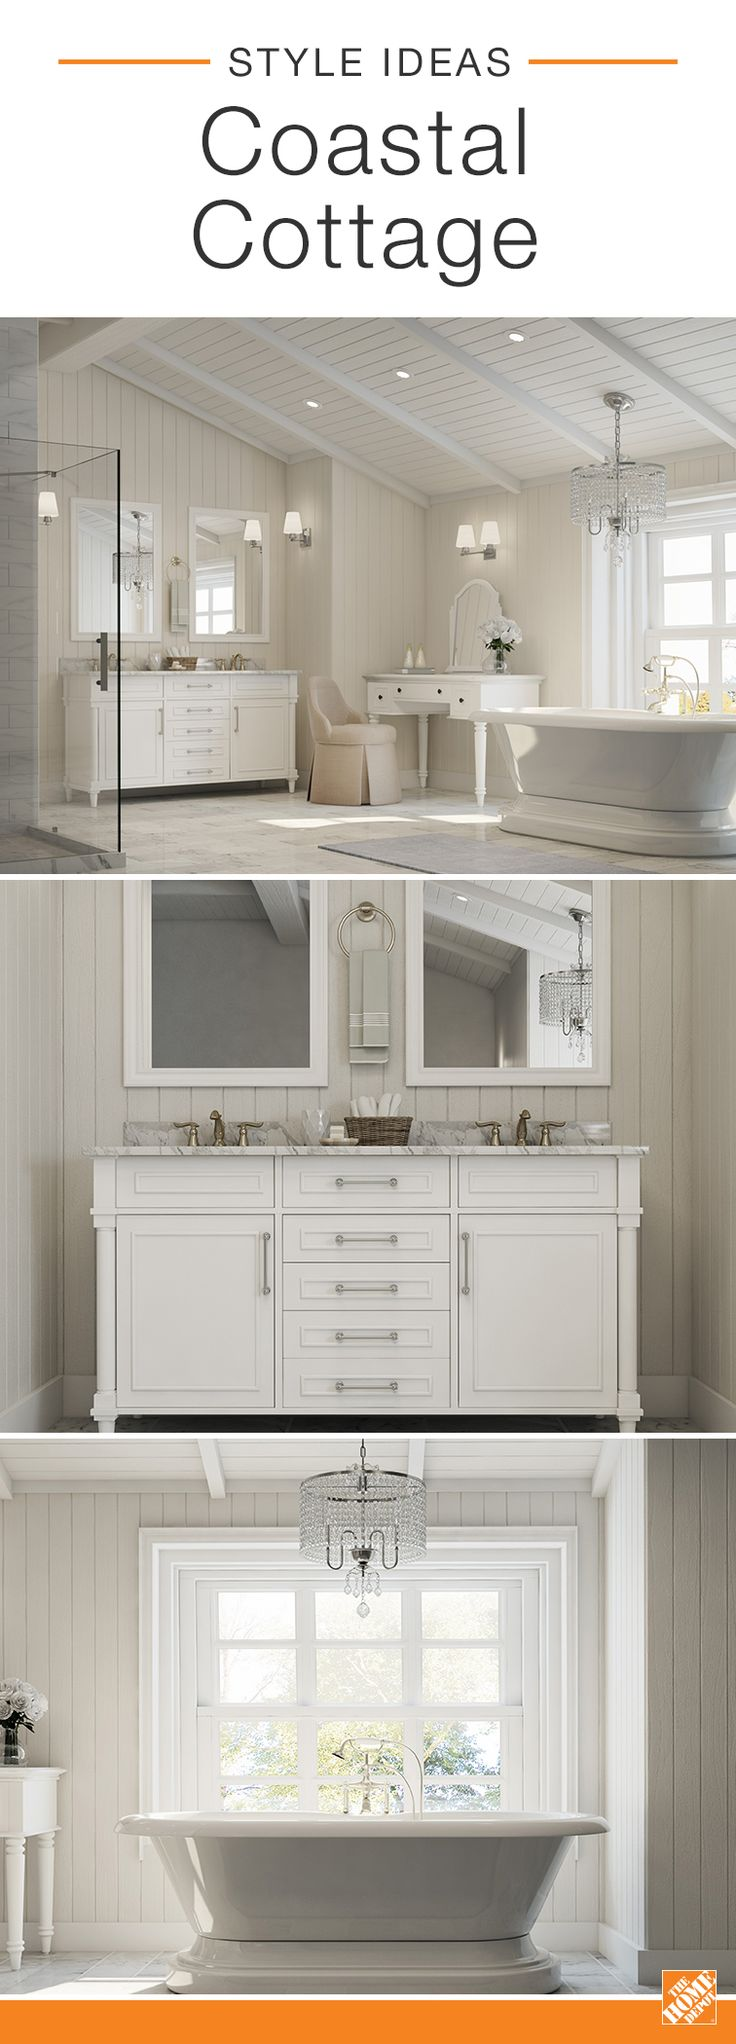 Create U0026 Customize Your Bathrooms Coastal Cottage U2013 The Home Depot